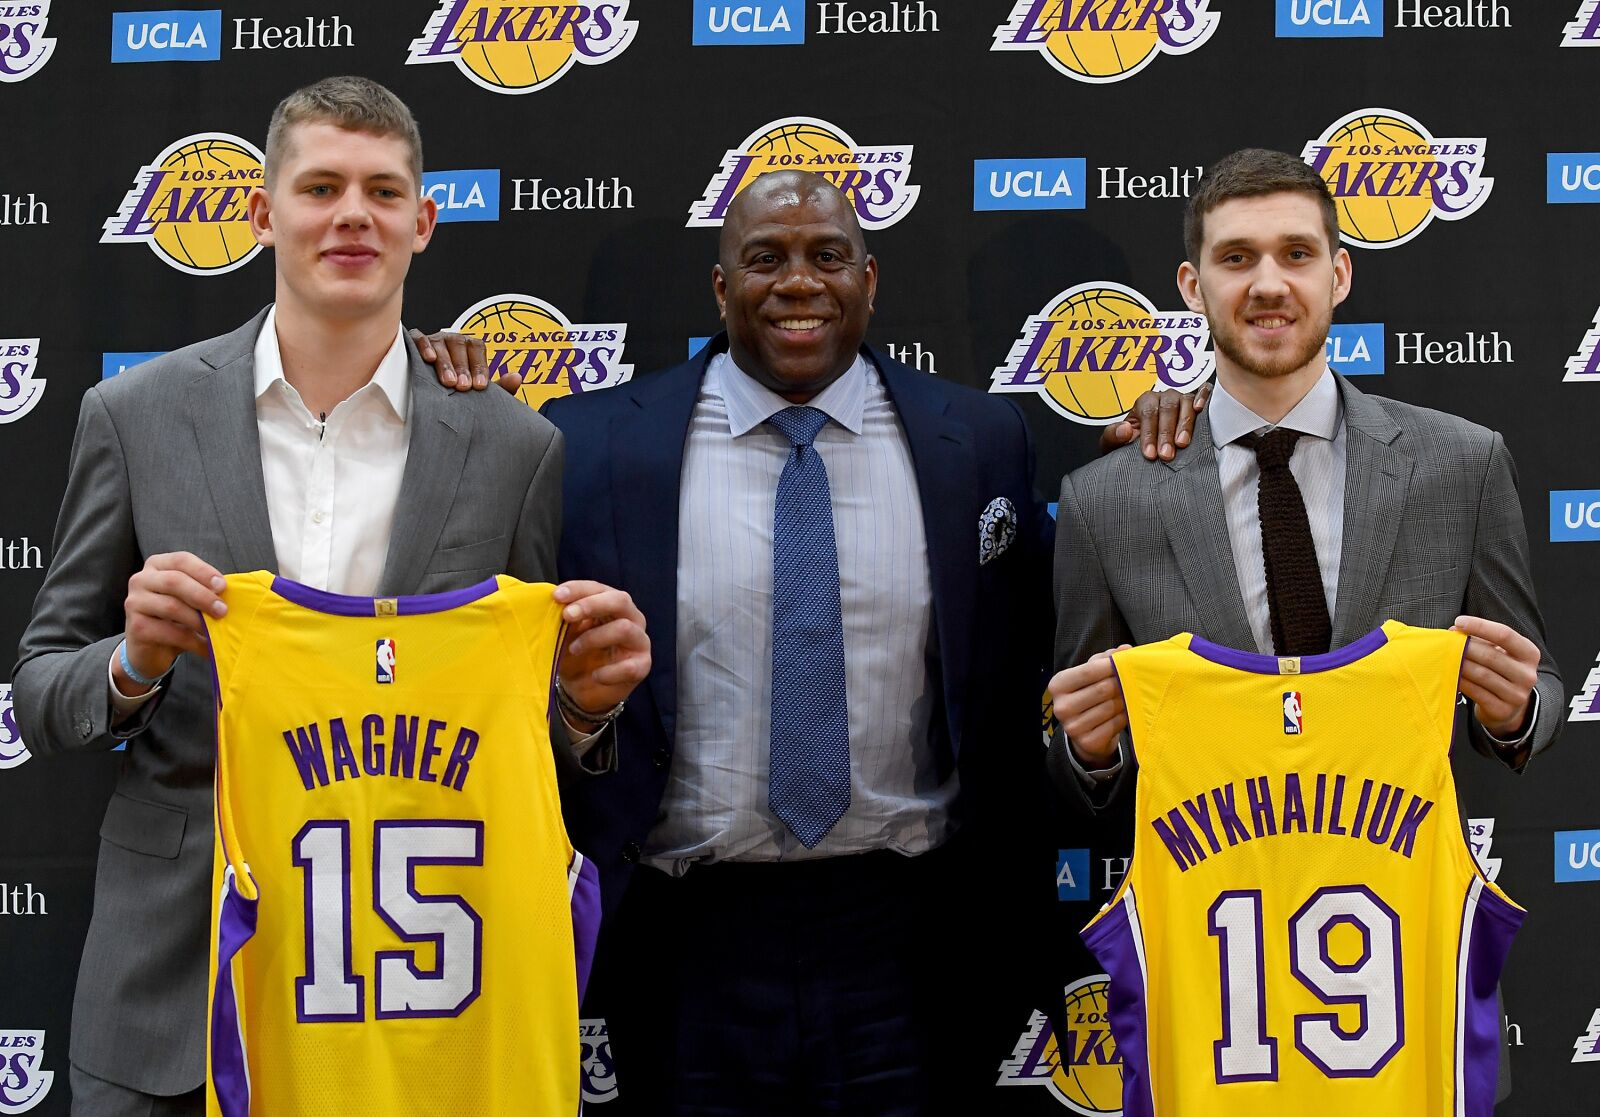 Los Angeles Lakers  Summer league standouts earning minutes 4f716415b